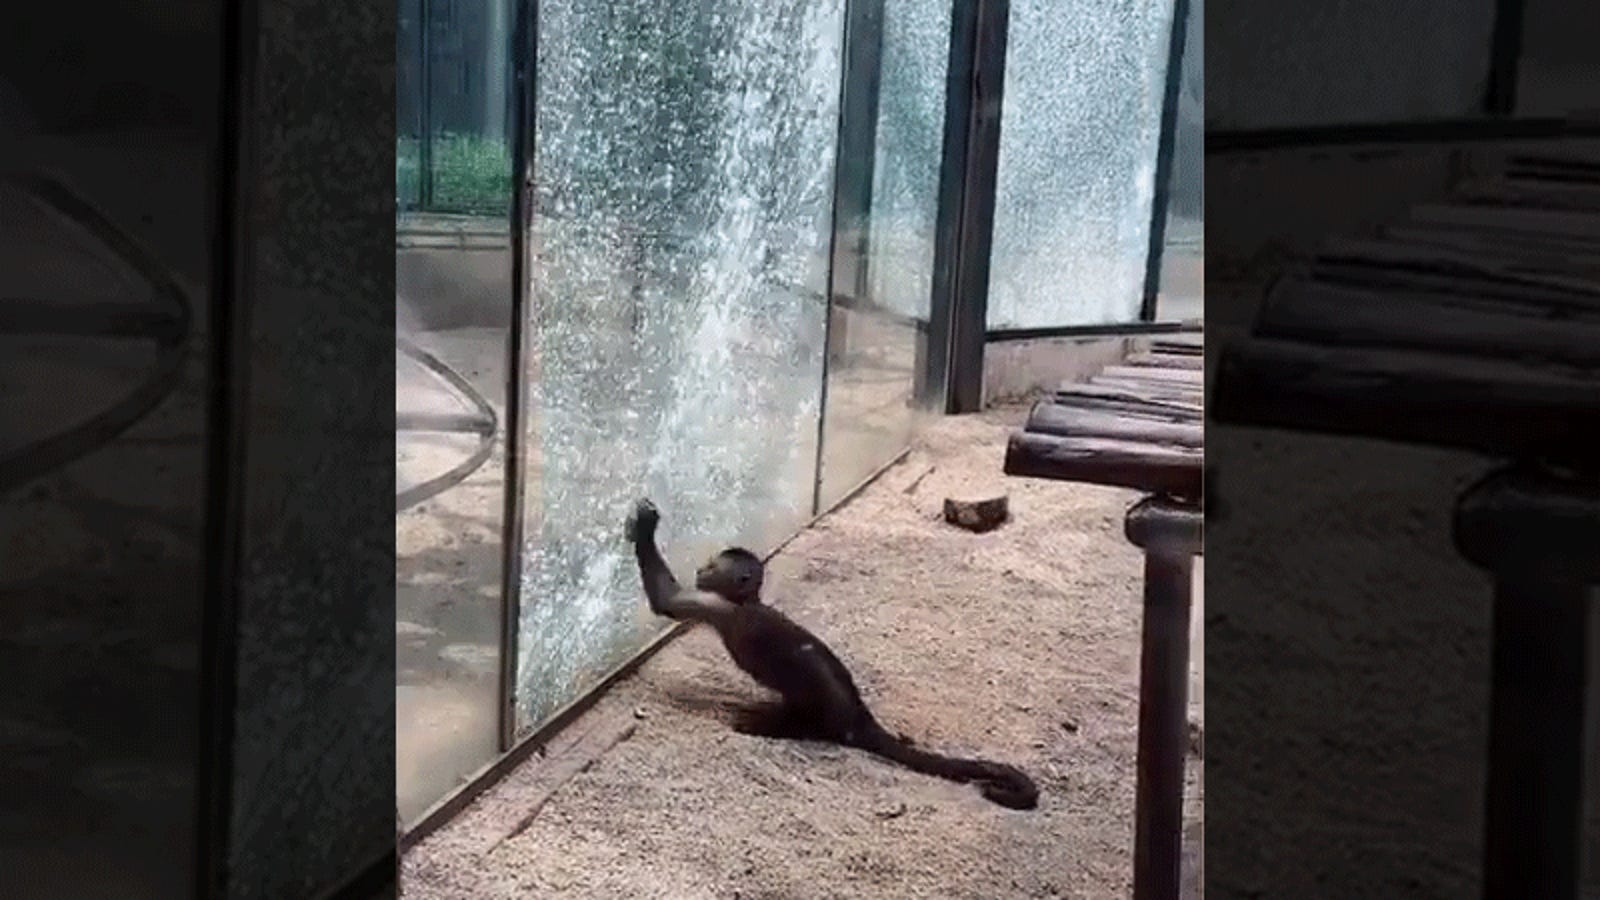 Monkey Shatters Zoo Glass With Sharpened Stone in Impressive Prison Break Attempt